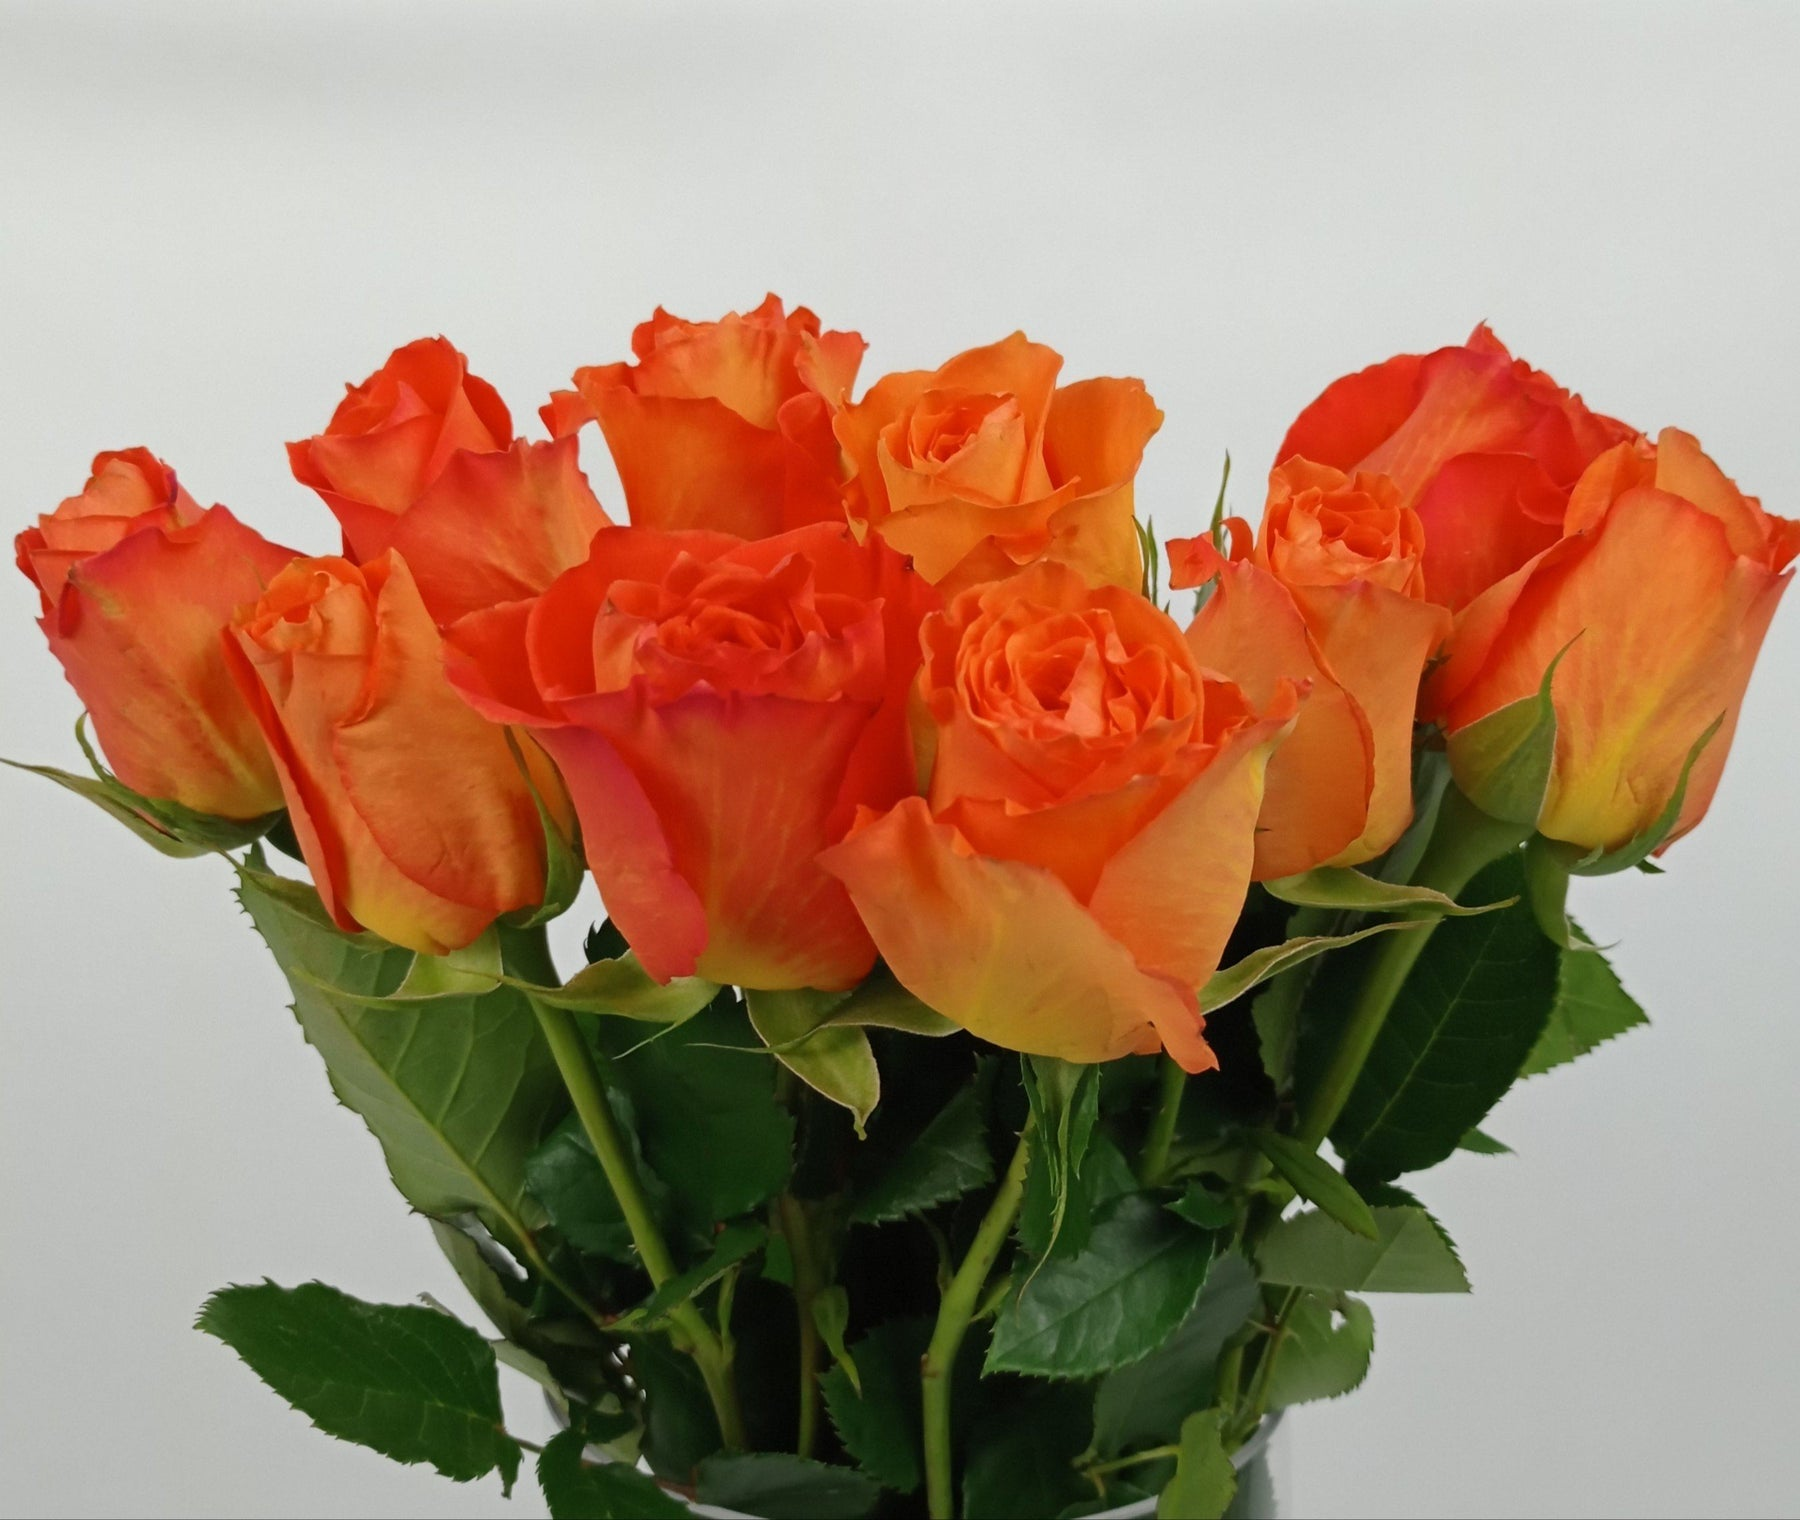 Rose (Imported) - Orange